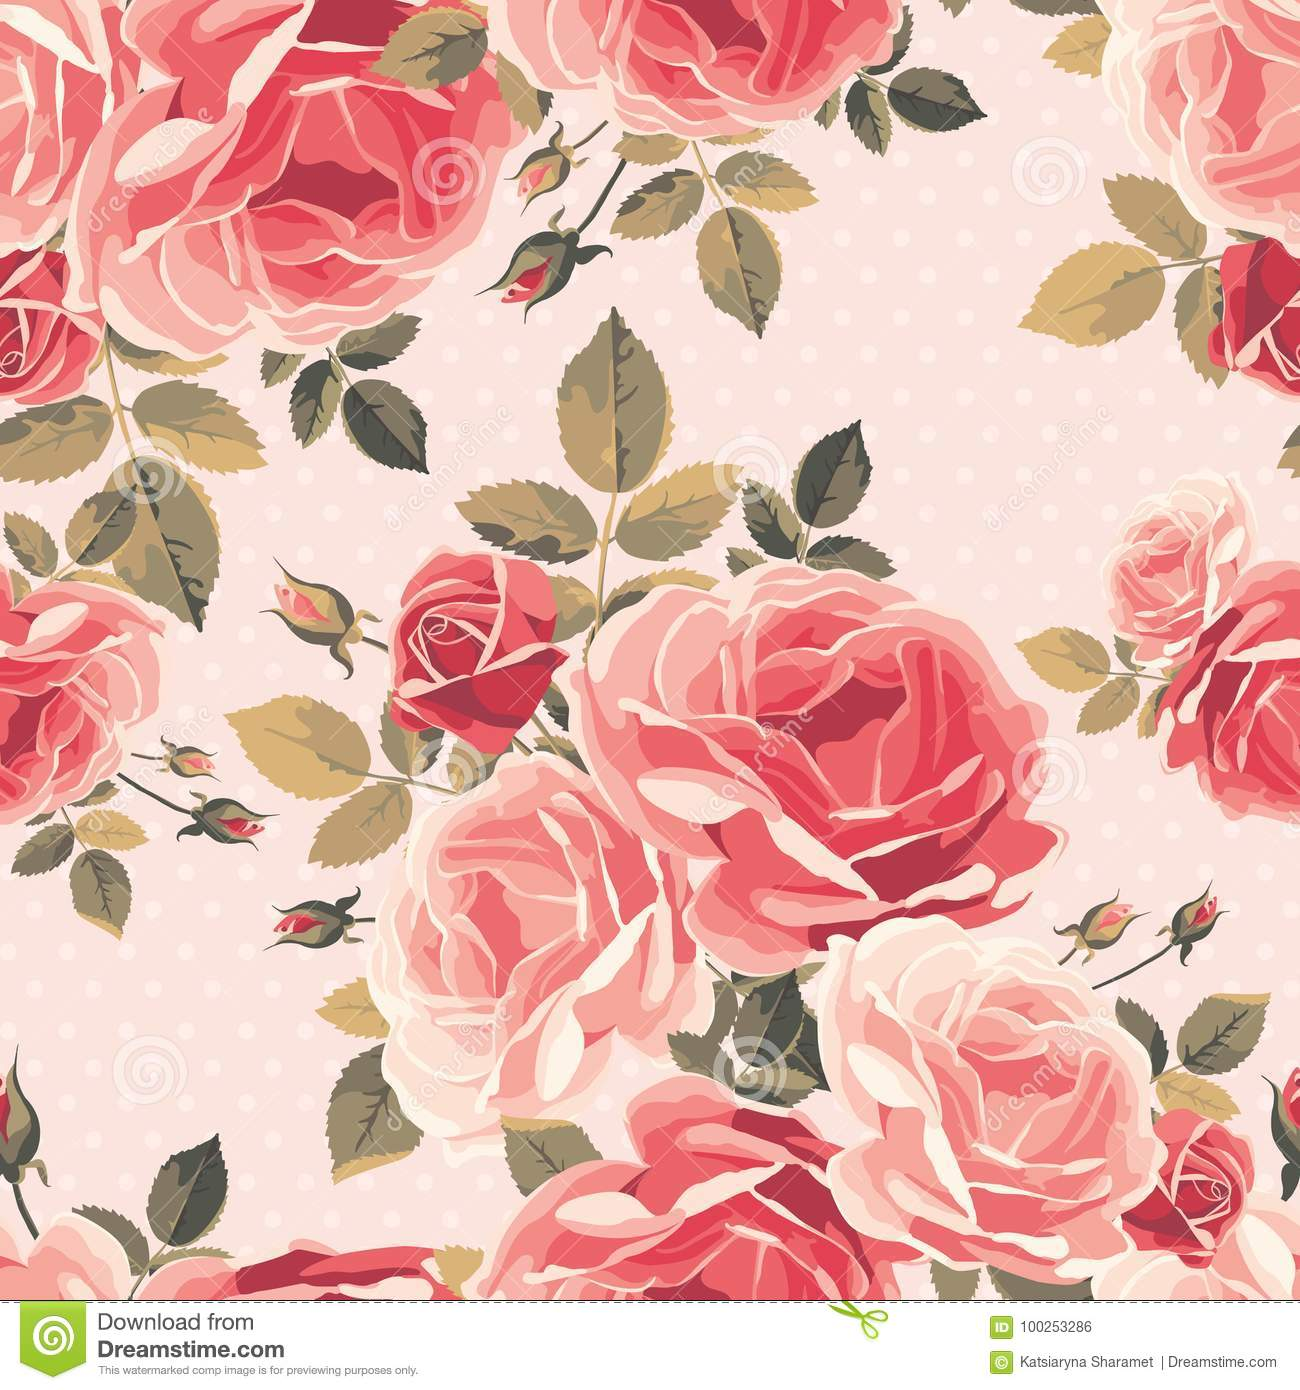 Vintage Rose Pattern Pictures, Photos, and Images for ... |Vintage Floral Rose Pattern